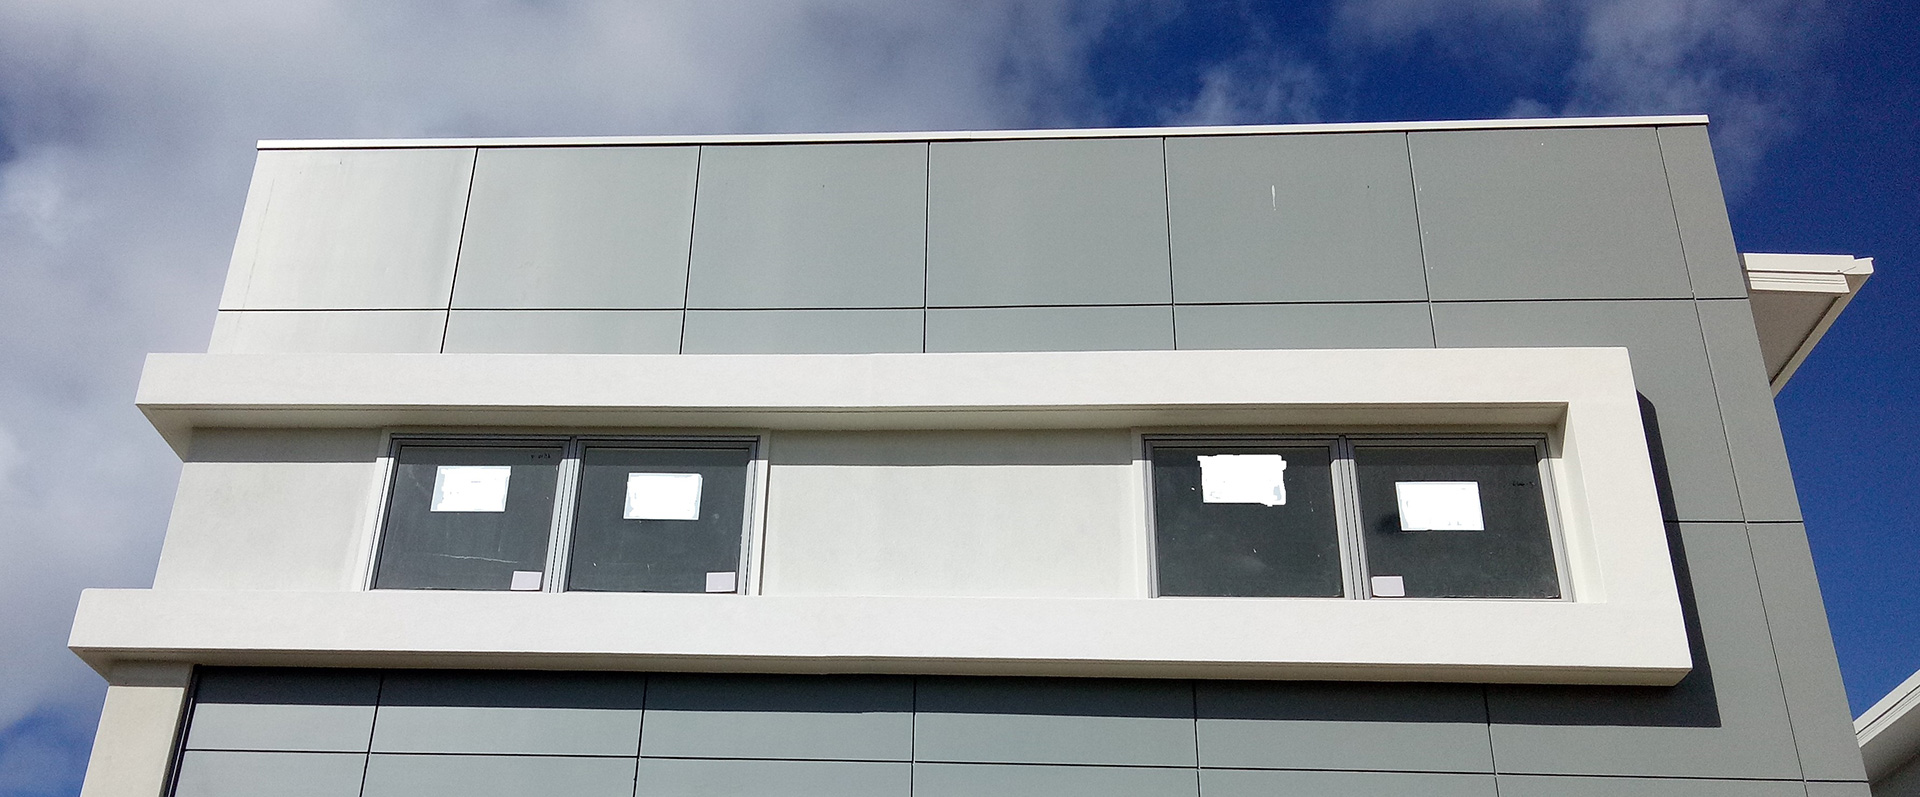 modern corporate building window features and facades Gold Coast Australia